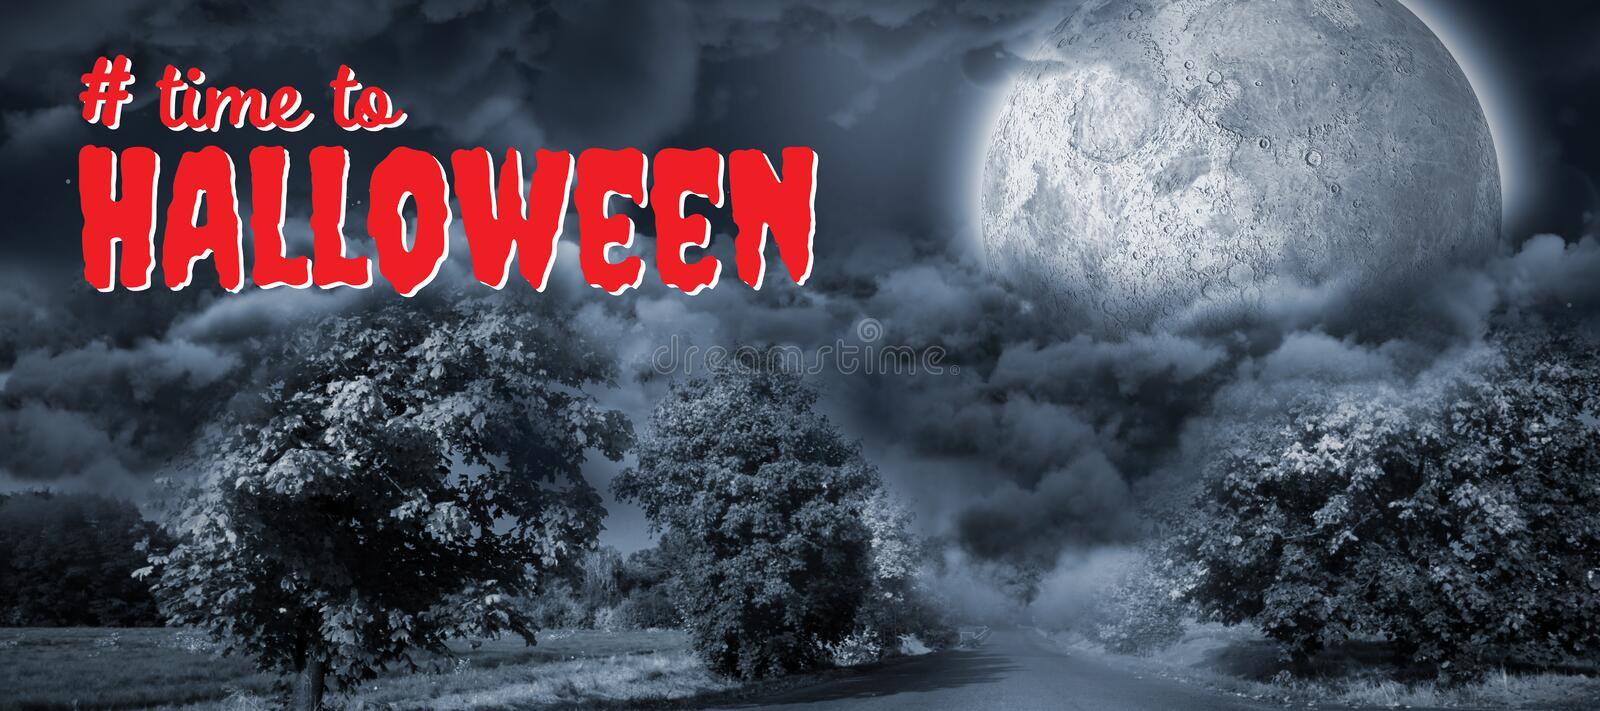 Composite image of digital composite image of time to halloween text. Digital composite image of time to Halloween text against landscape of a road between trees royalty free stock photo